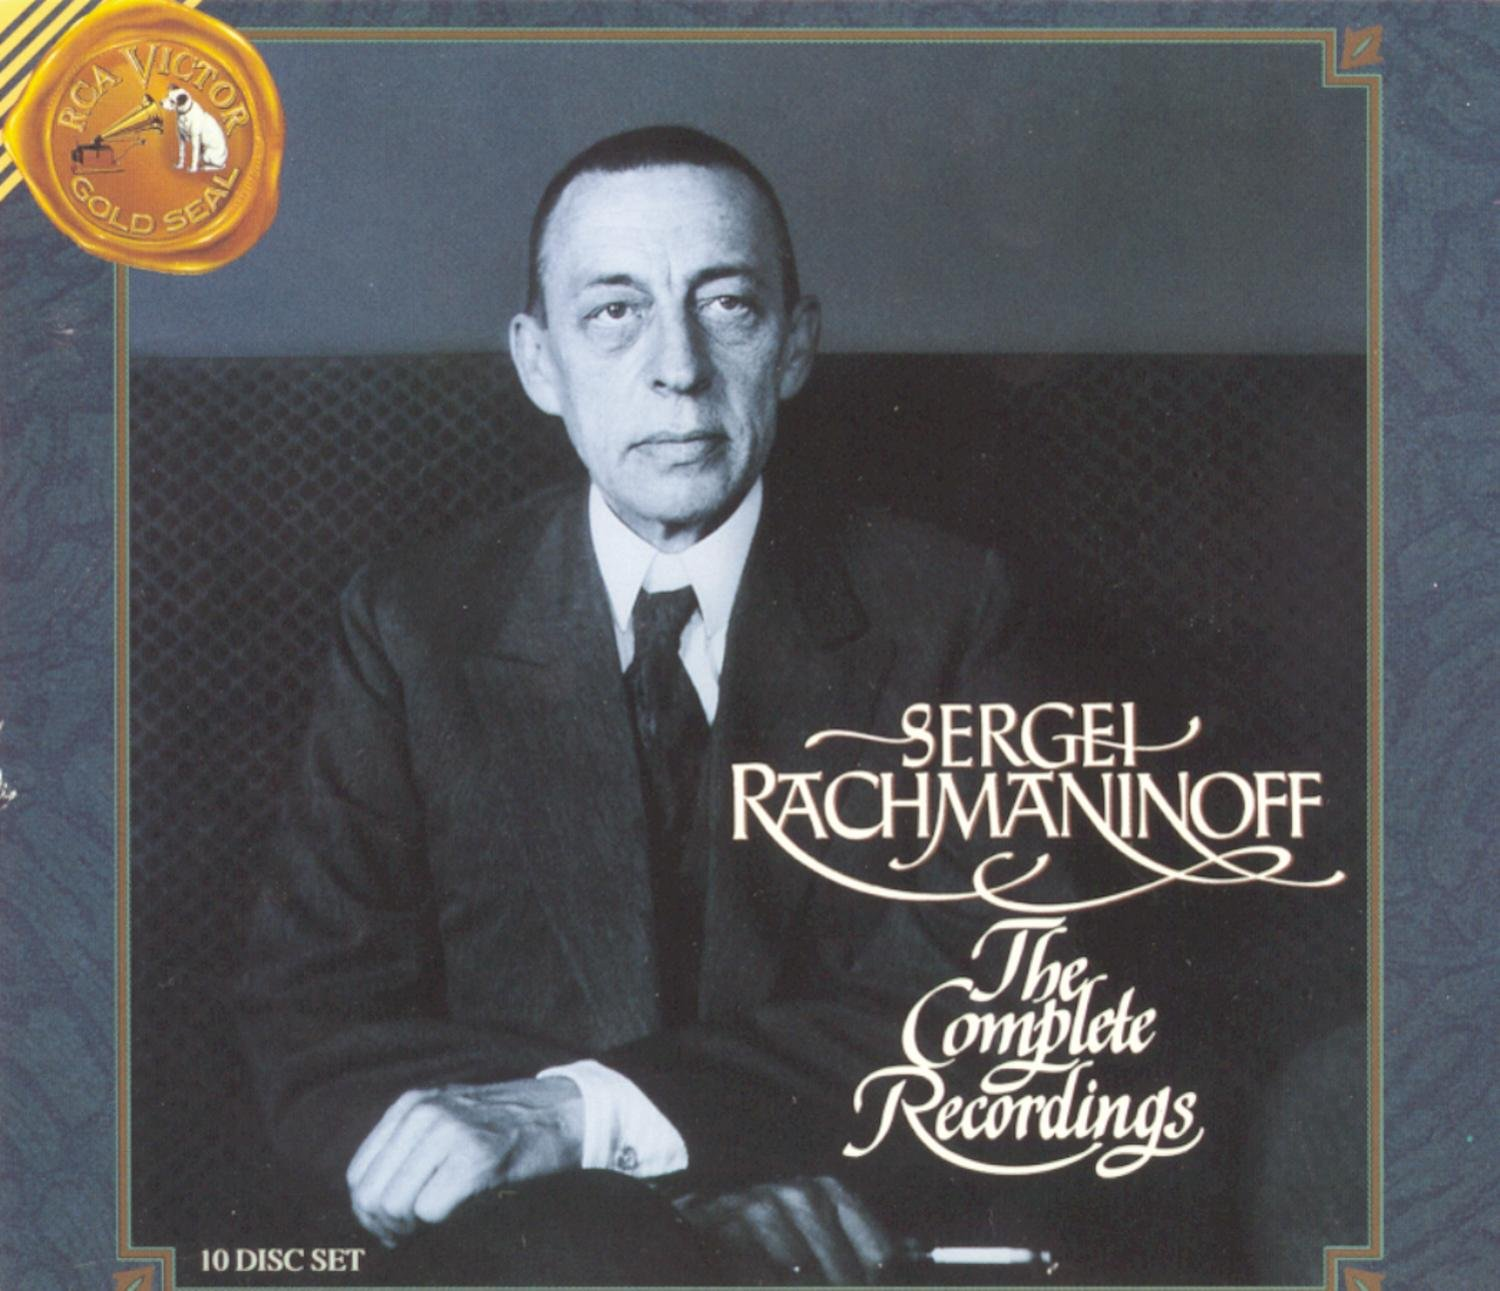 Sergei Rachmaninoff: The Complete Recordings by RCA Victor Gold Seal